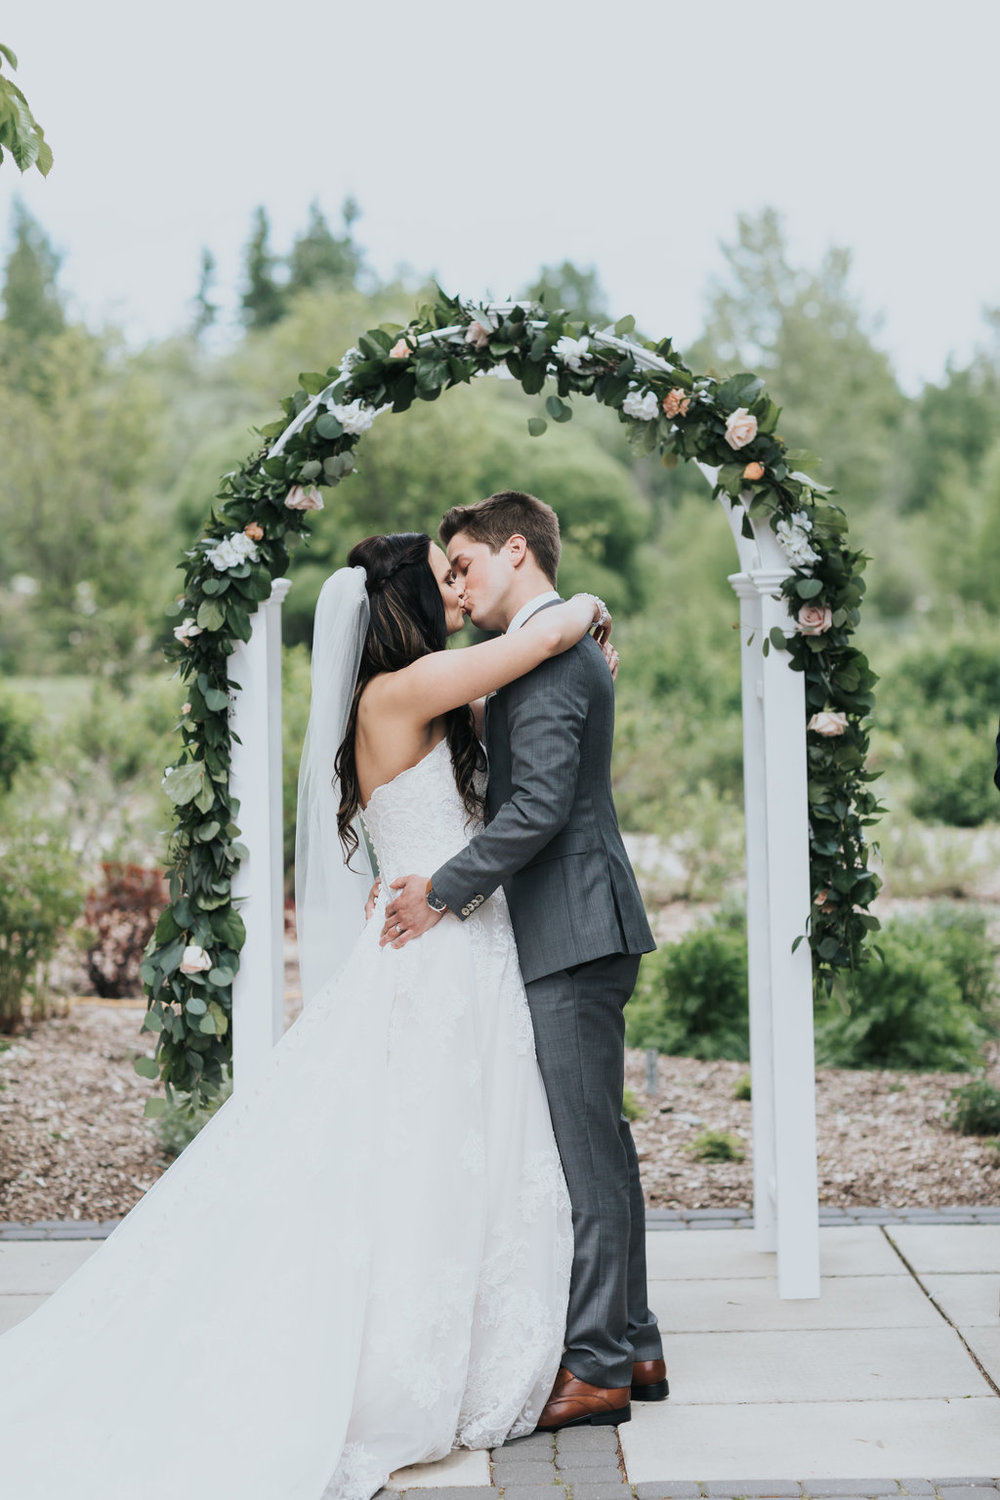 Kristy & Jharrid - Glamorous Garden - Photo Credits to ENV Photography